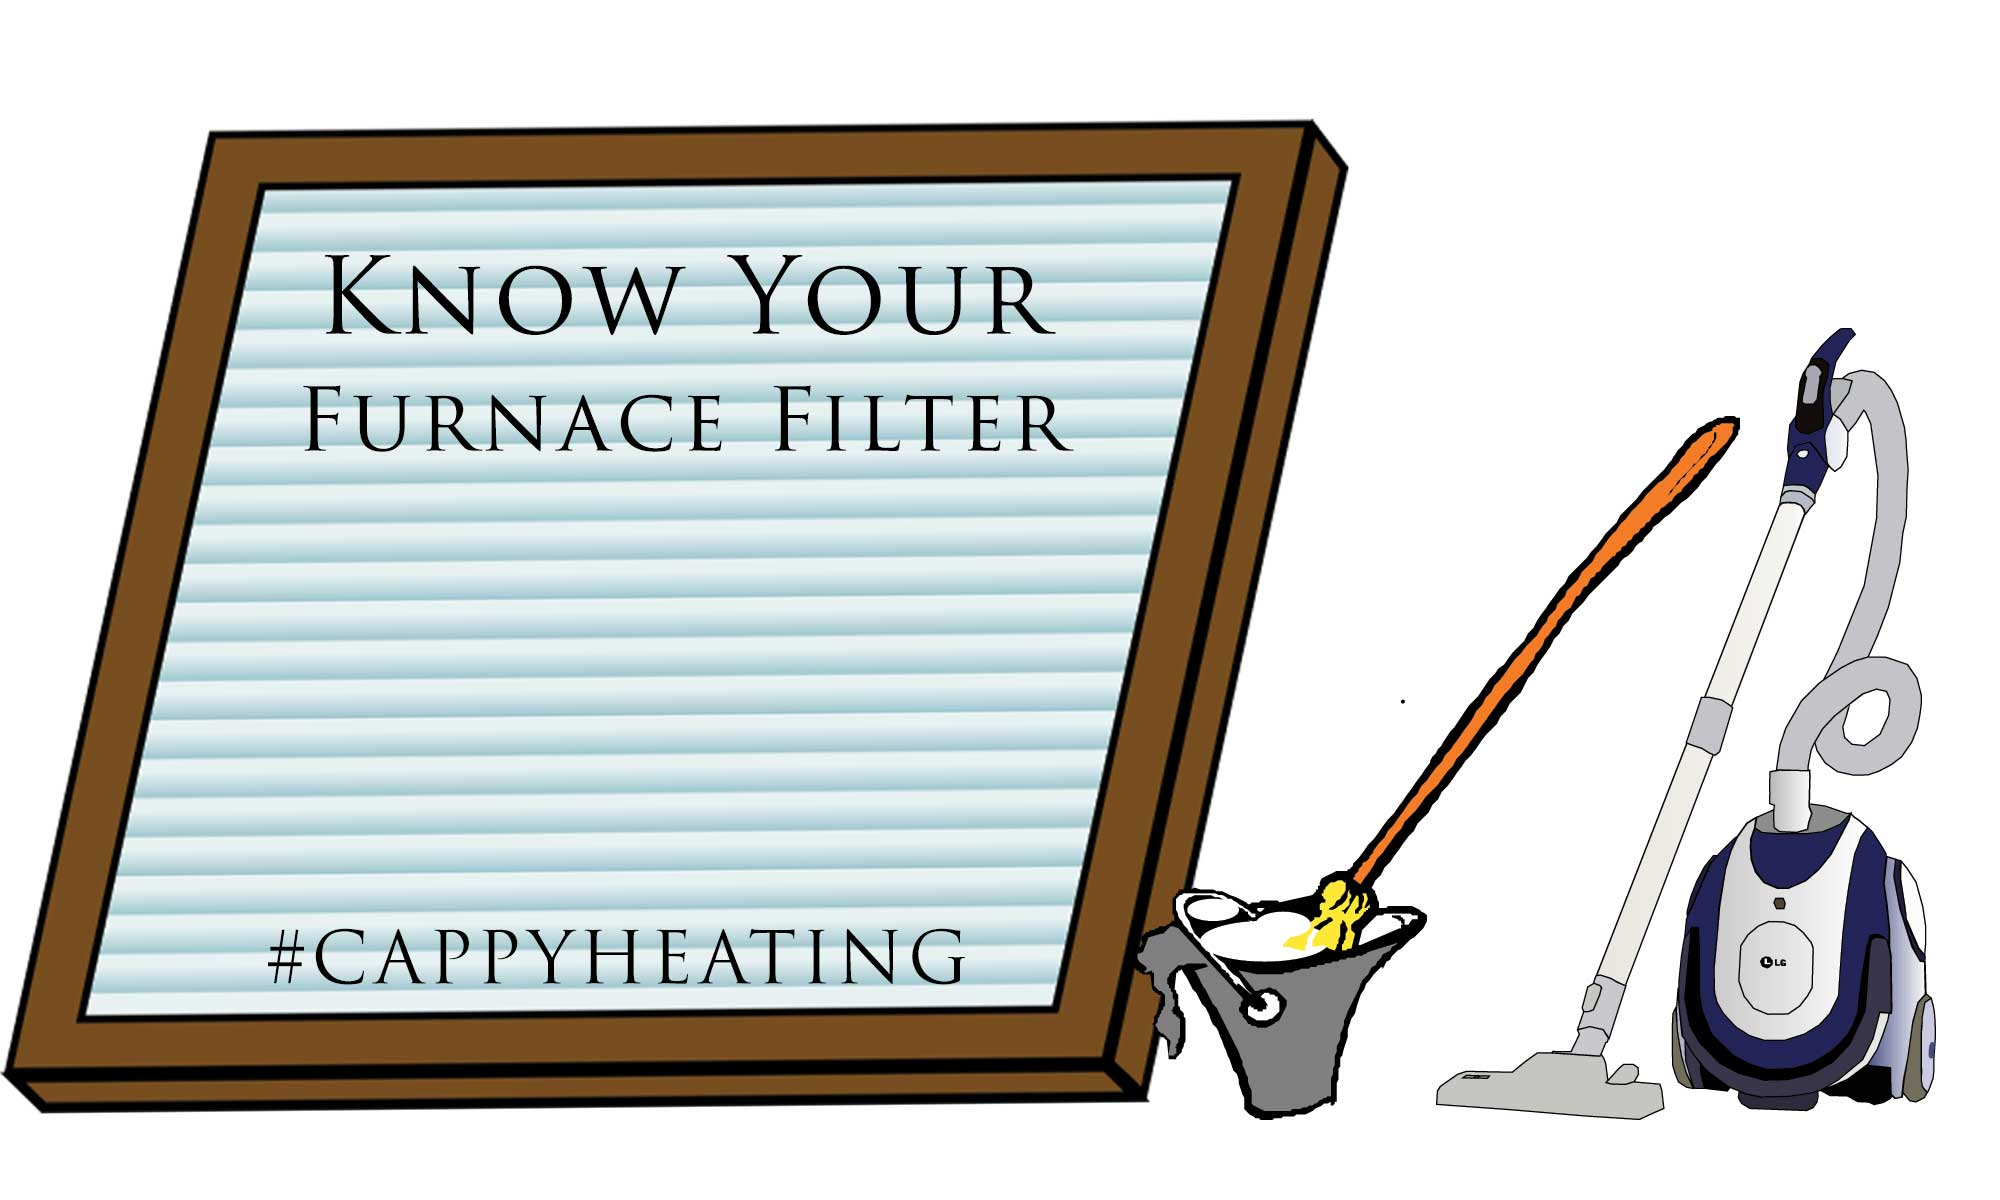 Heating and cooling sterling heights mi - Know Your Furnace Filter Air Quality